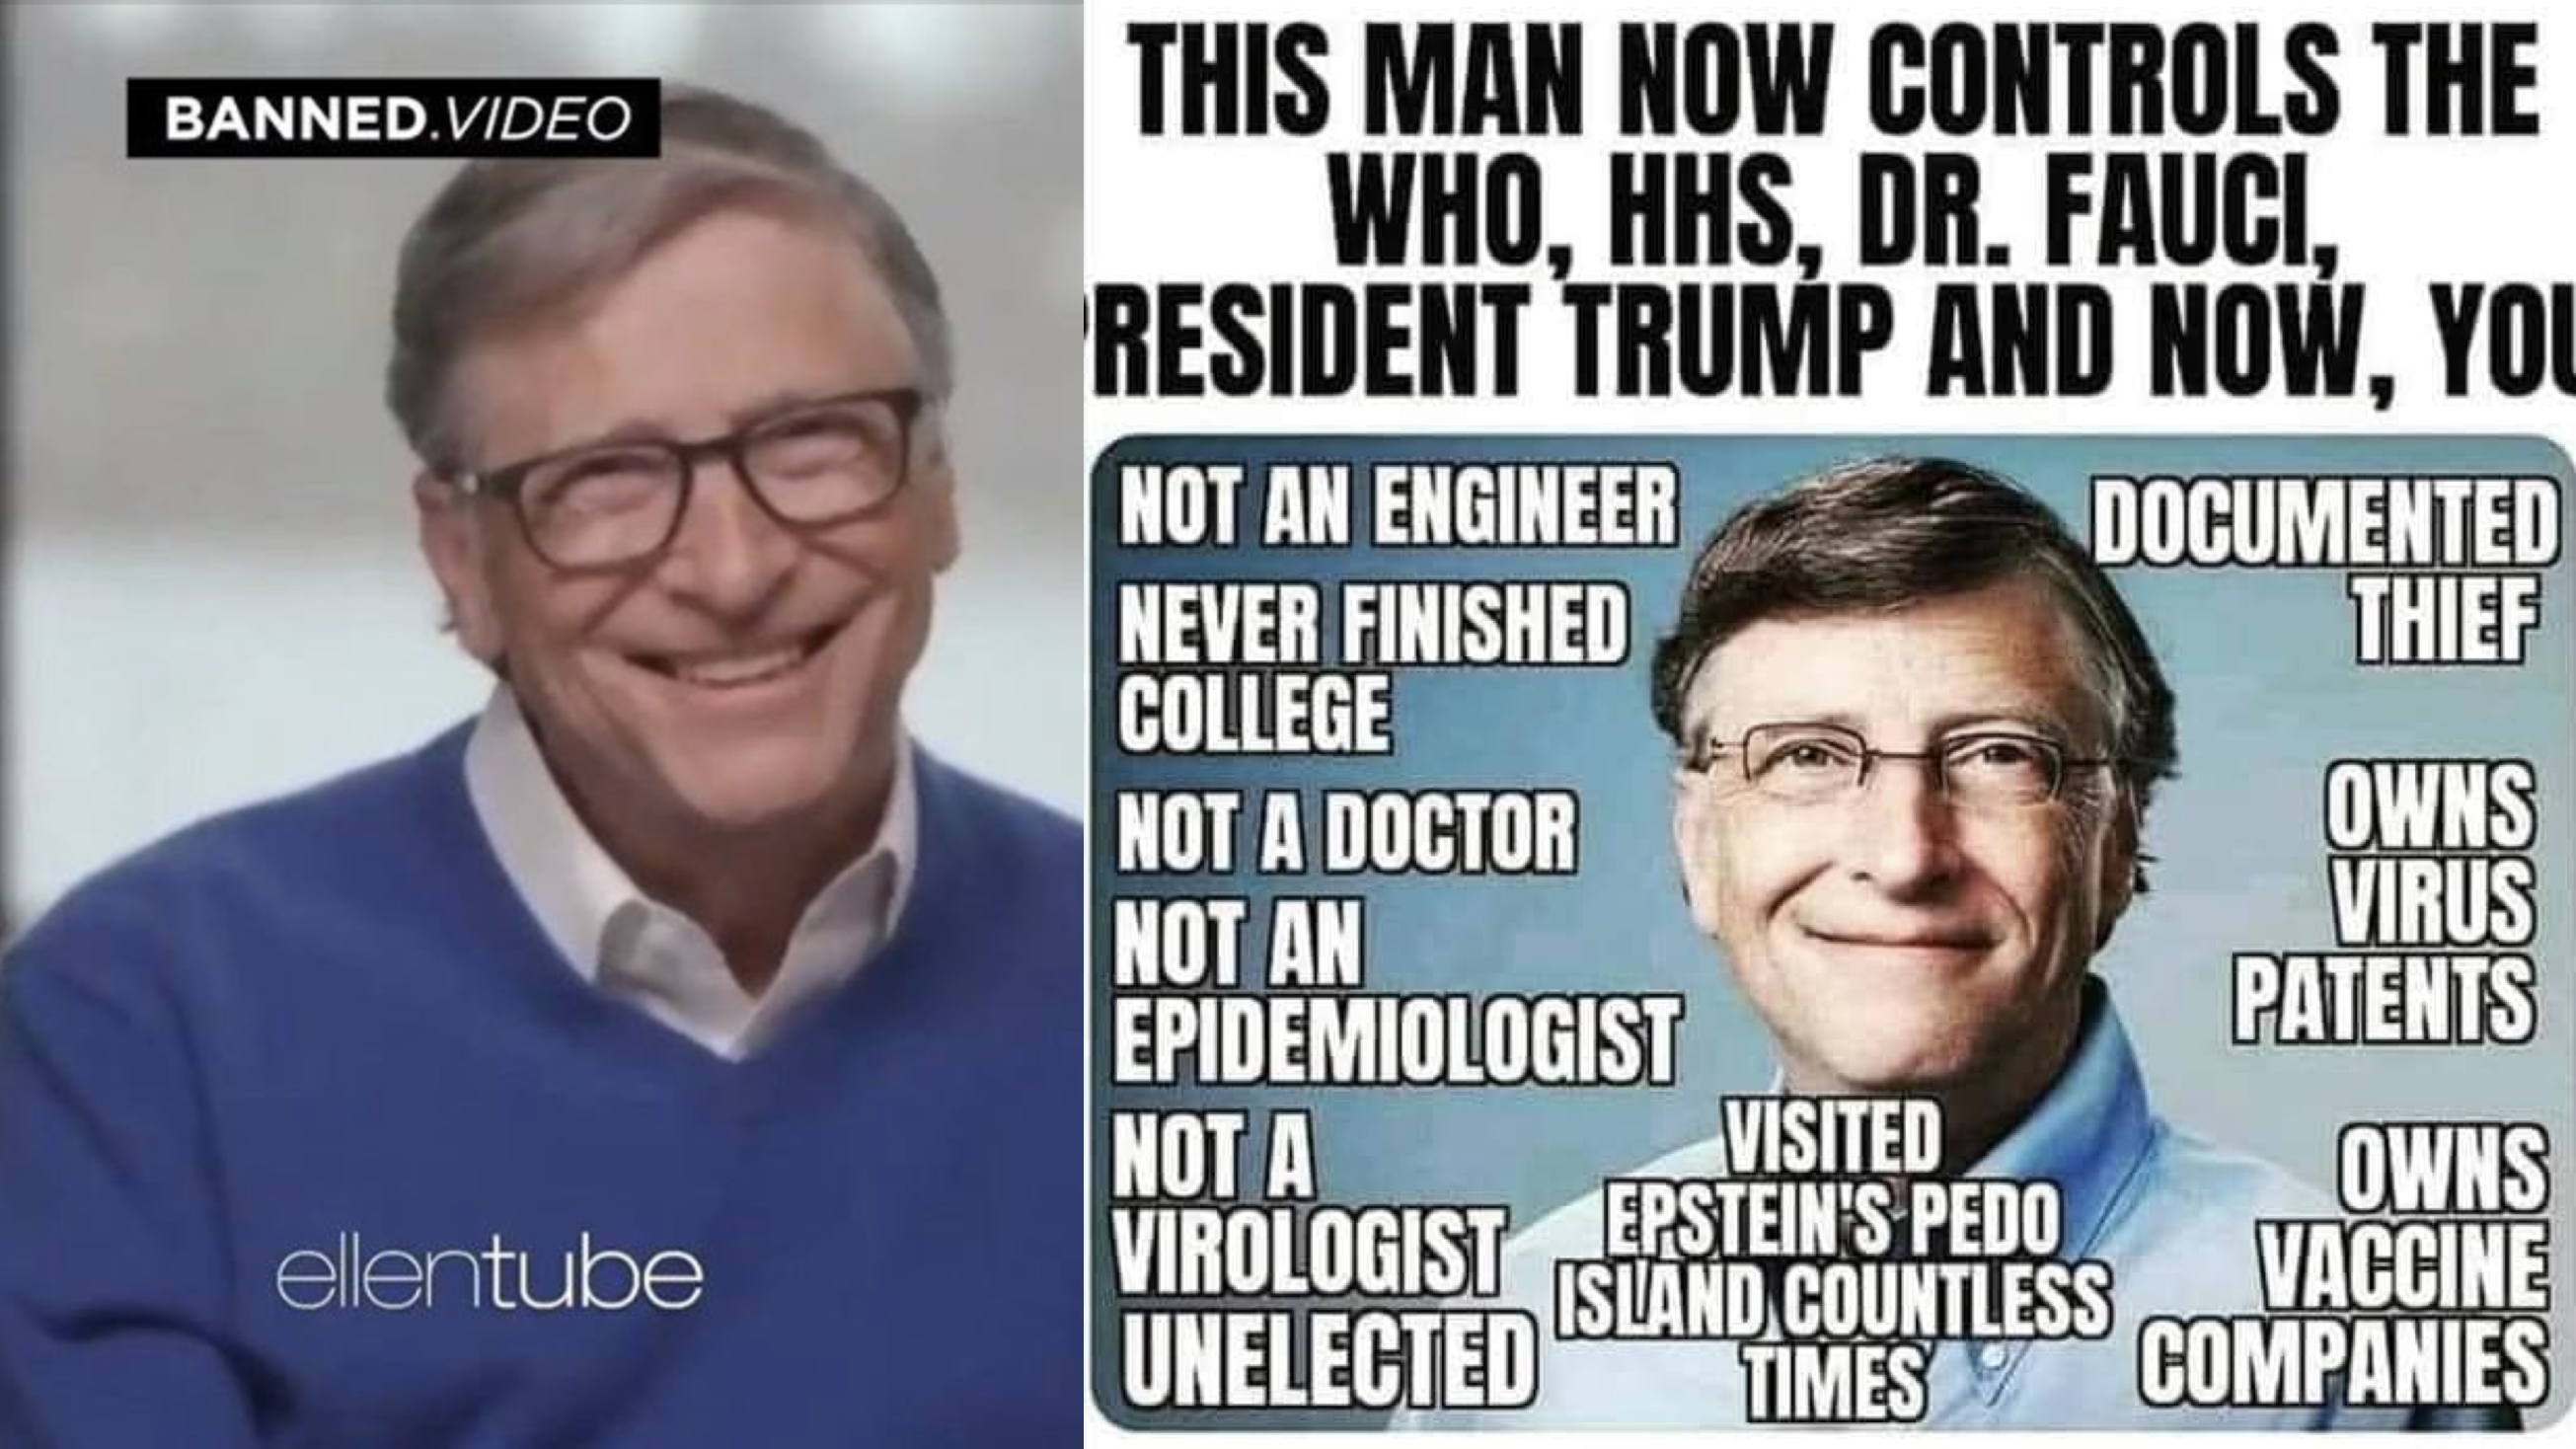 Bill Gates Infowars 4 19 2020